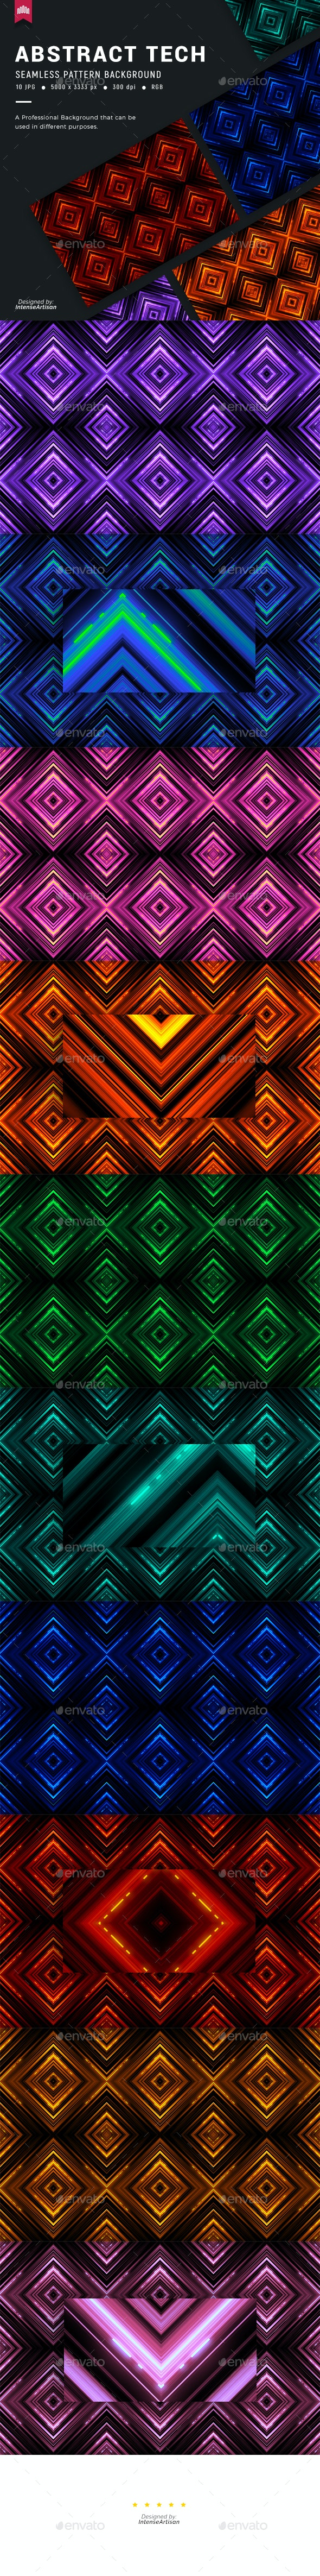 Tech Seamless Pattern Background - Patterns Backgrounds